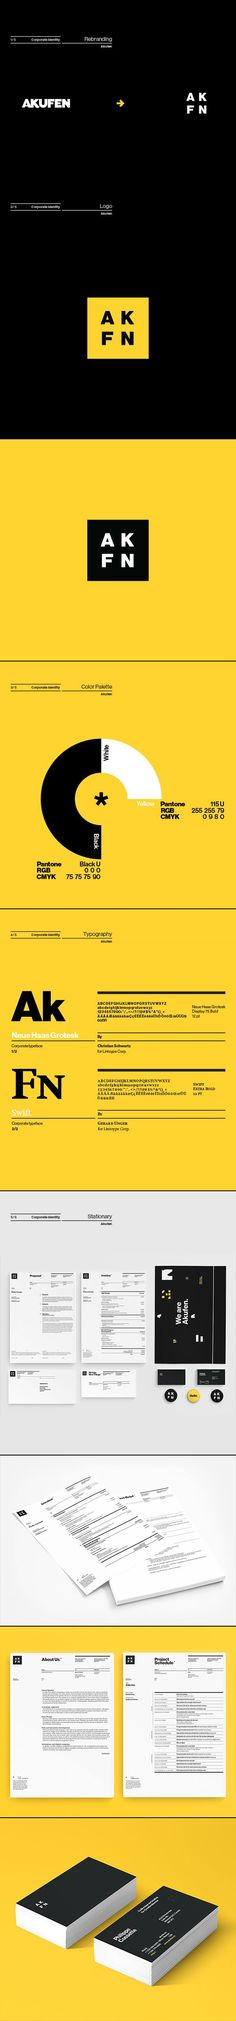 Akufen branding by Etienne Vles, via Behance. If you like UX, design, or design thinking, check out theuxblog.com